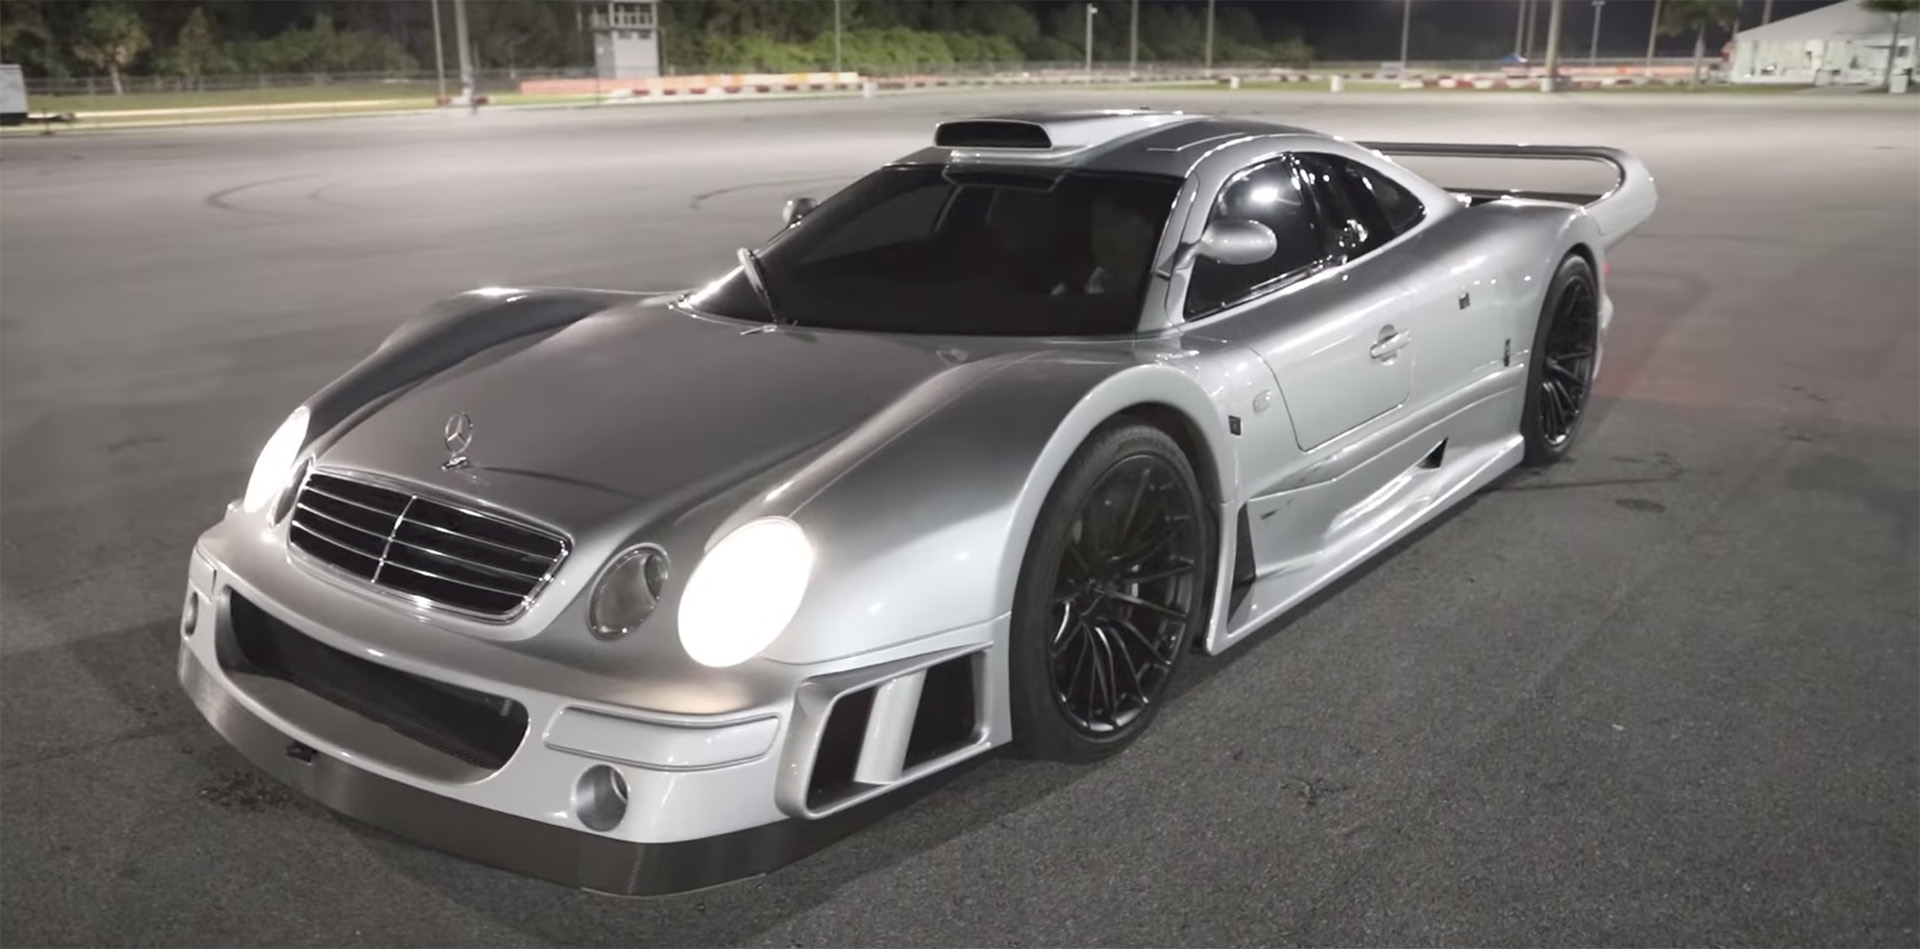 build a rc car with 1110545 Enjoy The Sights And Sounds Of The Mercedes Benz Clk Gtr on Jet Powered Rx7 Wtf furthermore 422916221243038582 also 750620 Next Lexus Ls 2018 Model 48 in addition VW T1 Samba Bus additionally Military Dioramas.